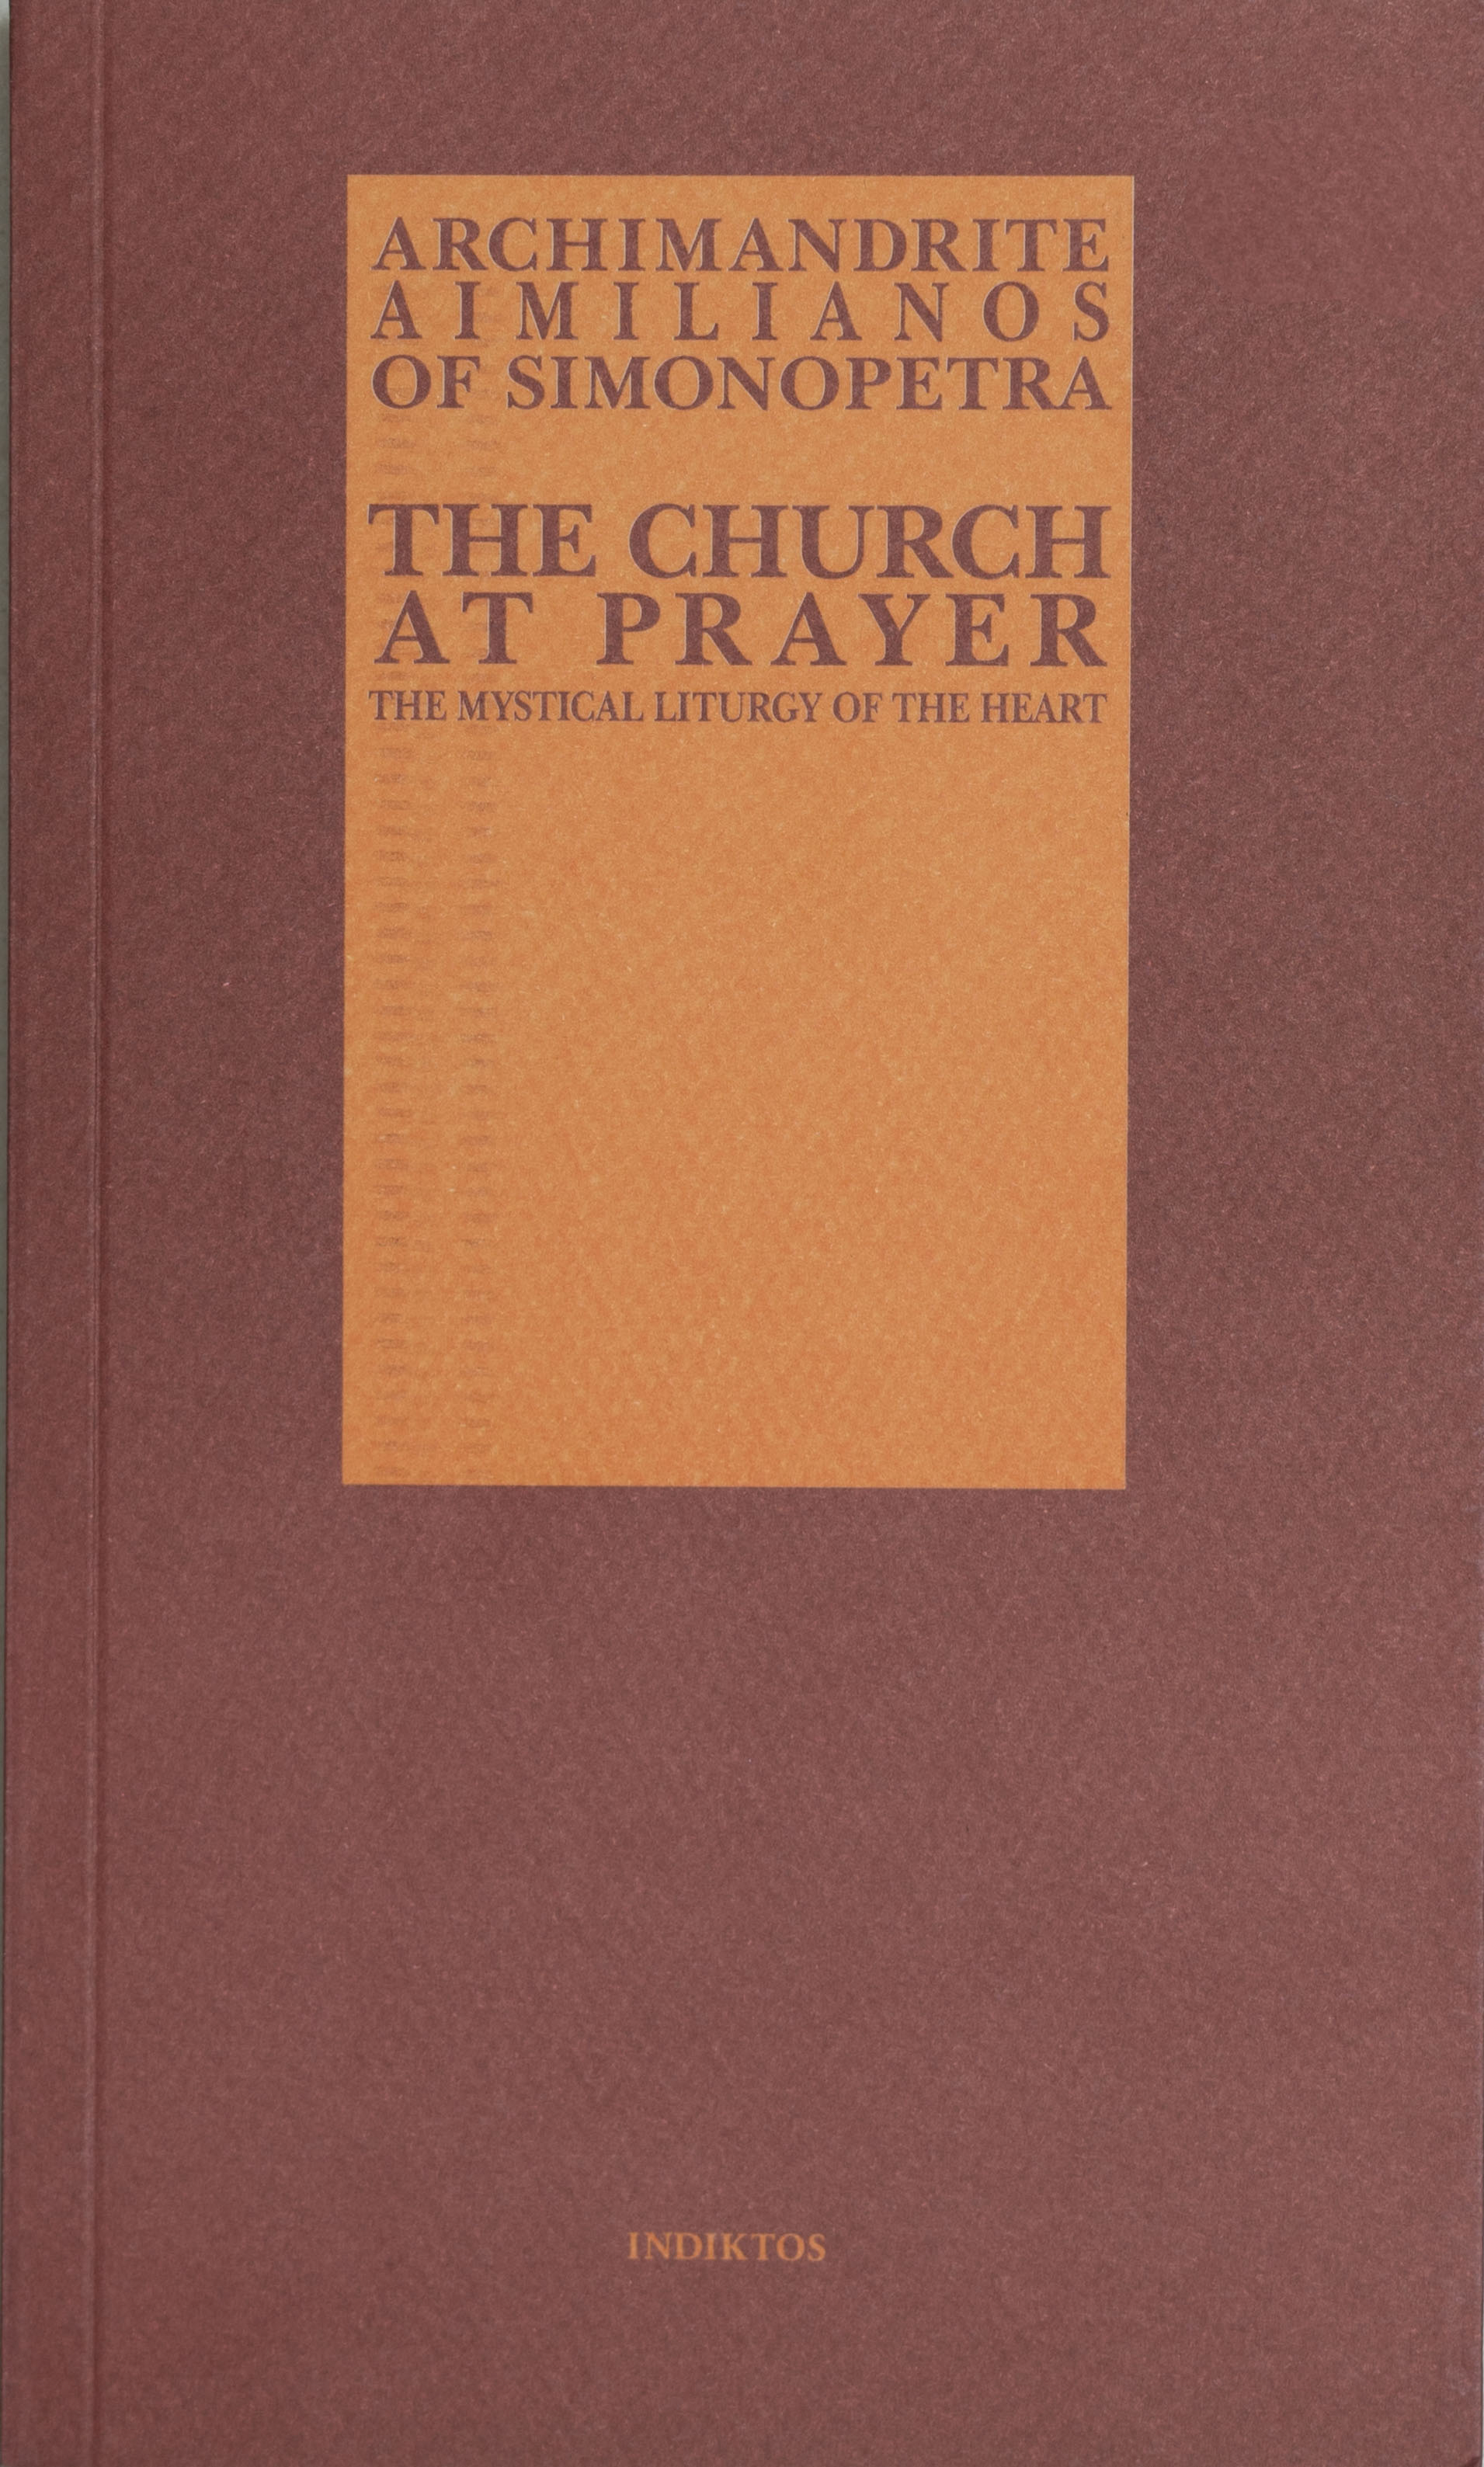 The Church at Prayer: The Mystical Liturgy of the Heart